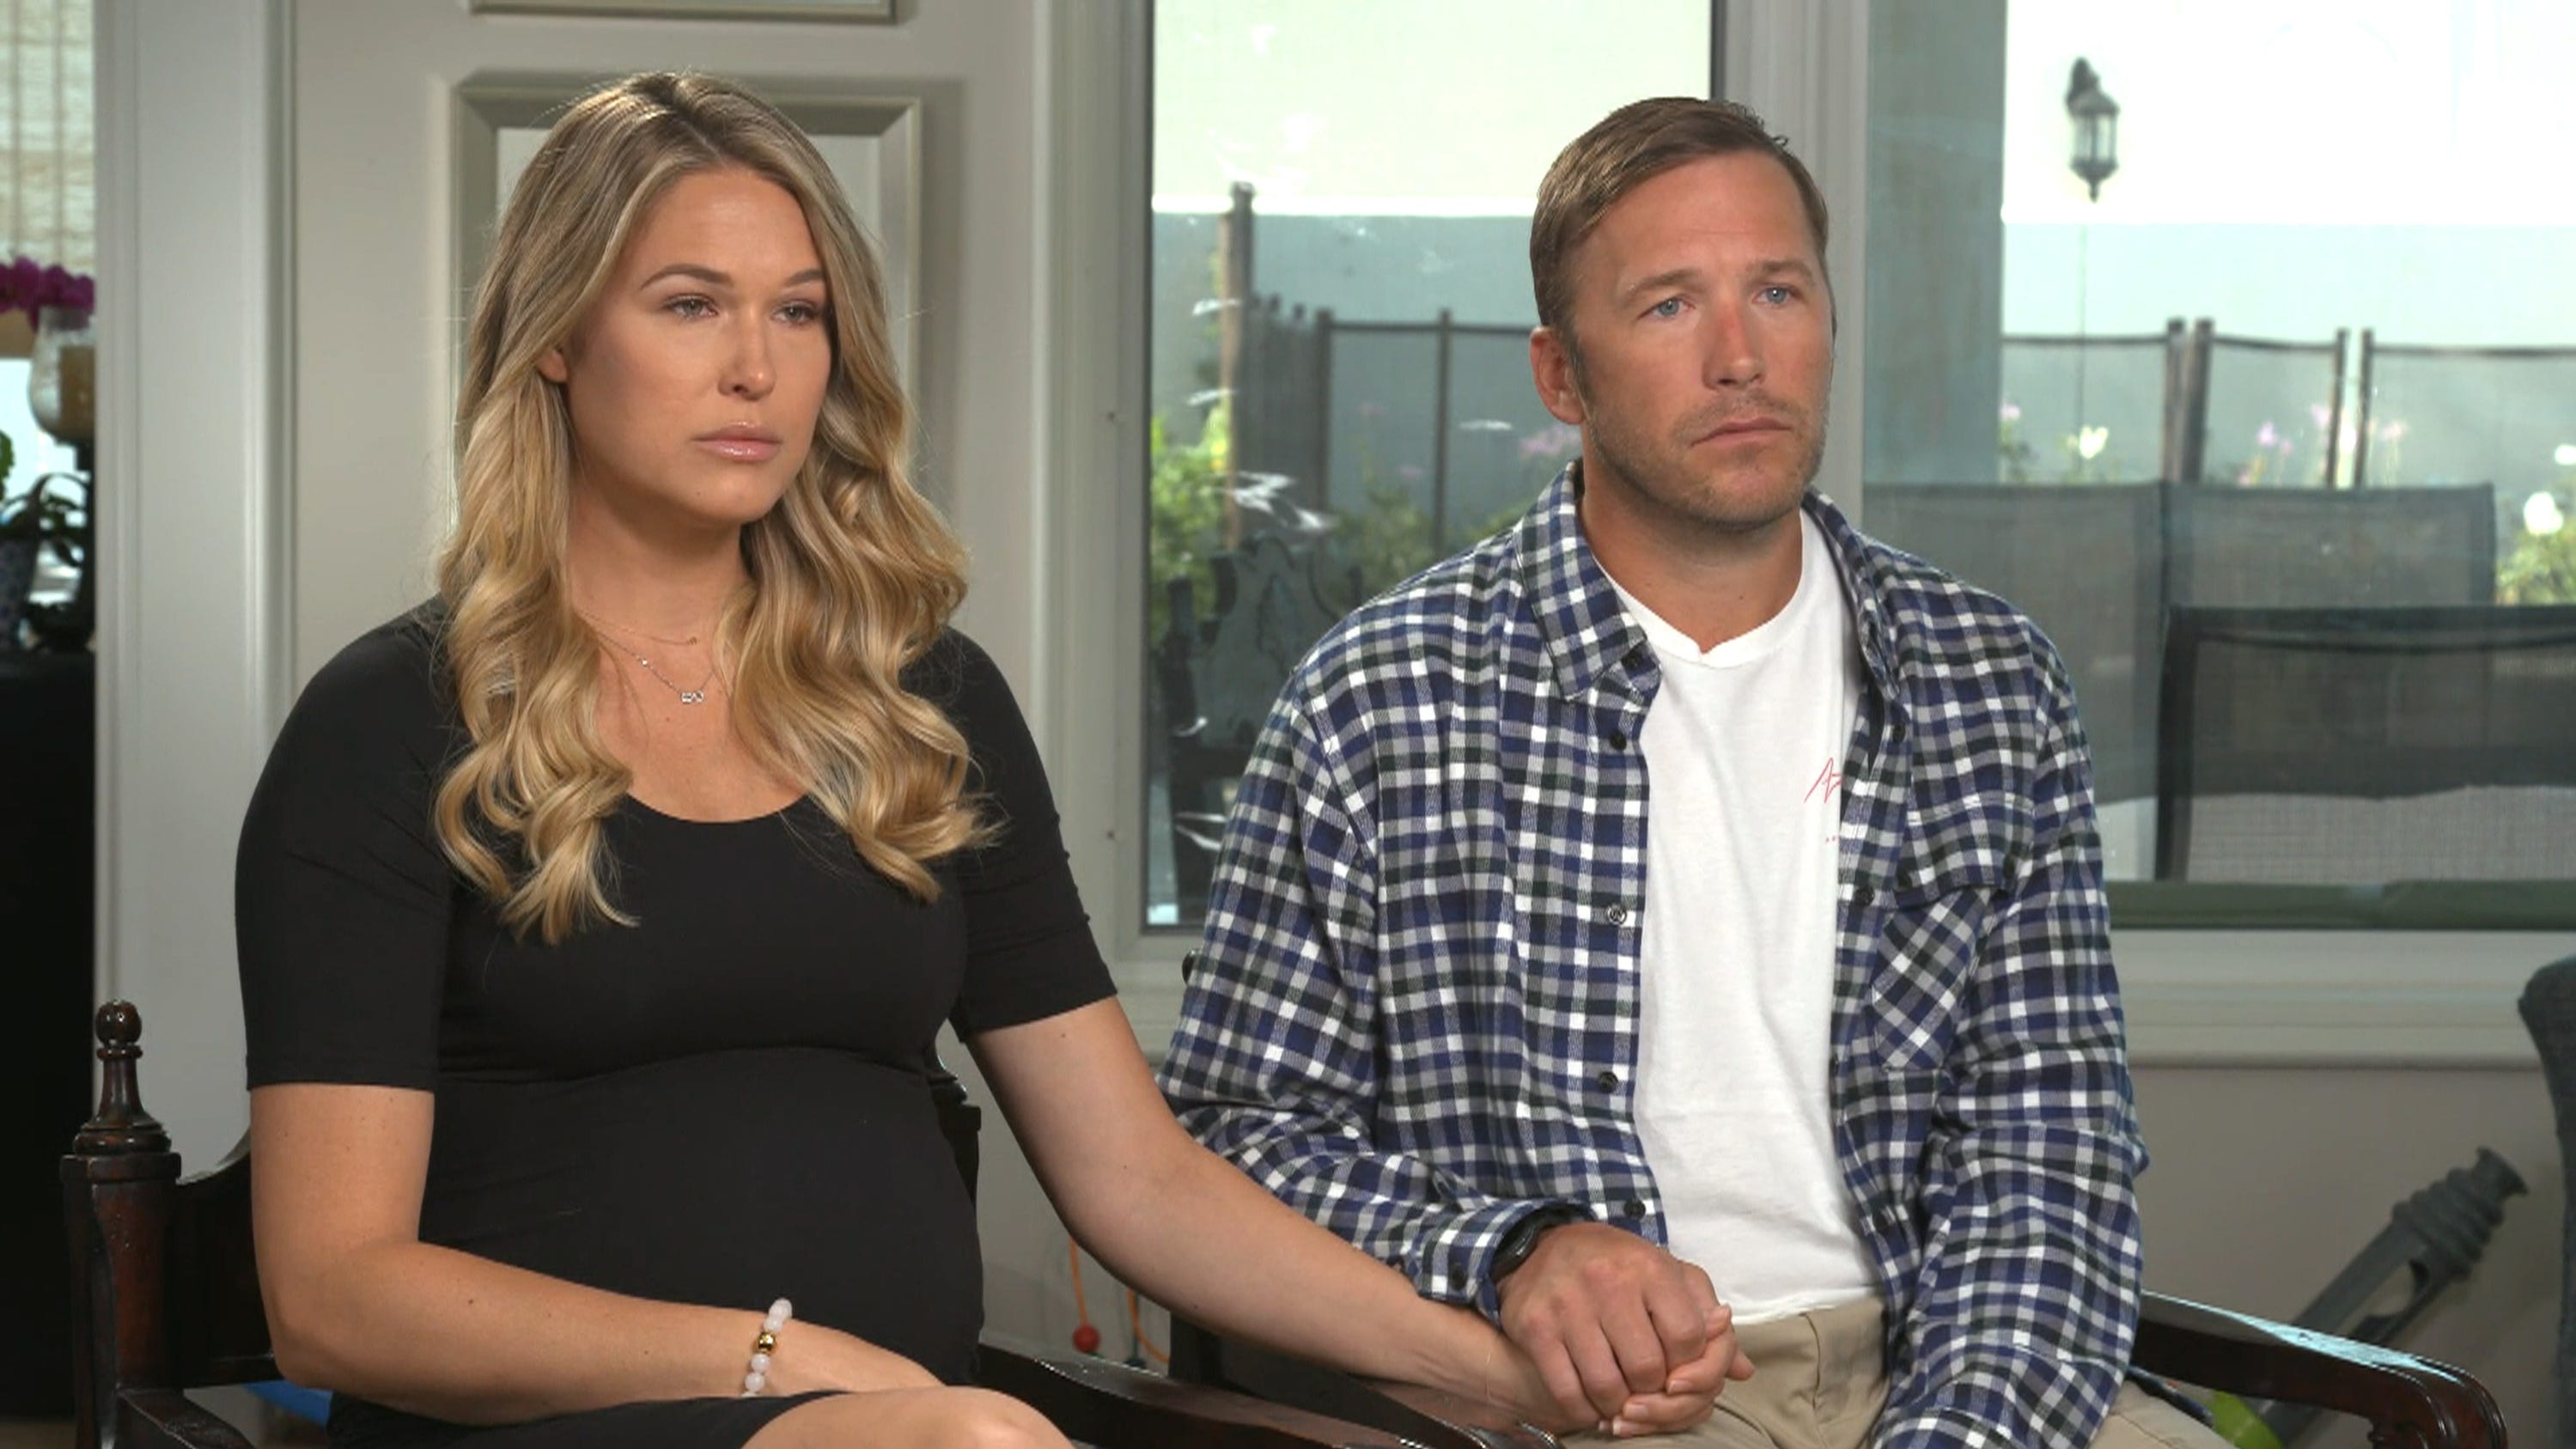 Bode and Morgan Miller remember their late daughter: 'no more starting fresh' after loss